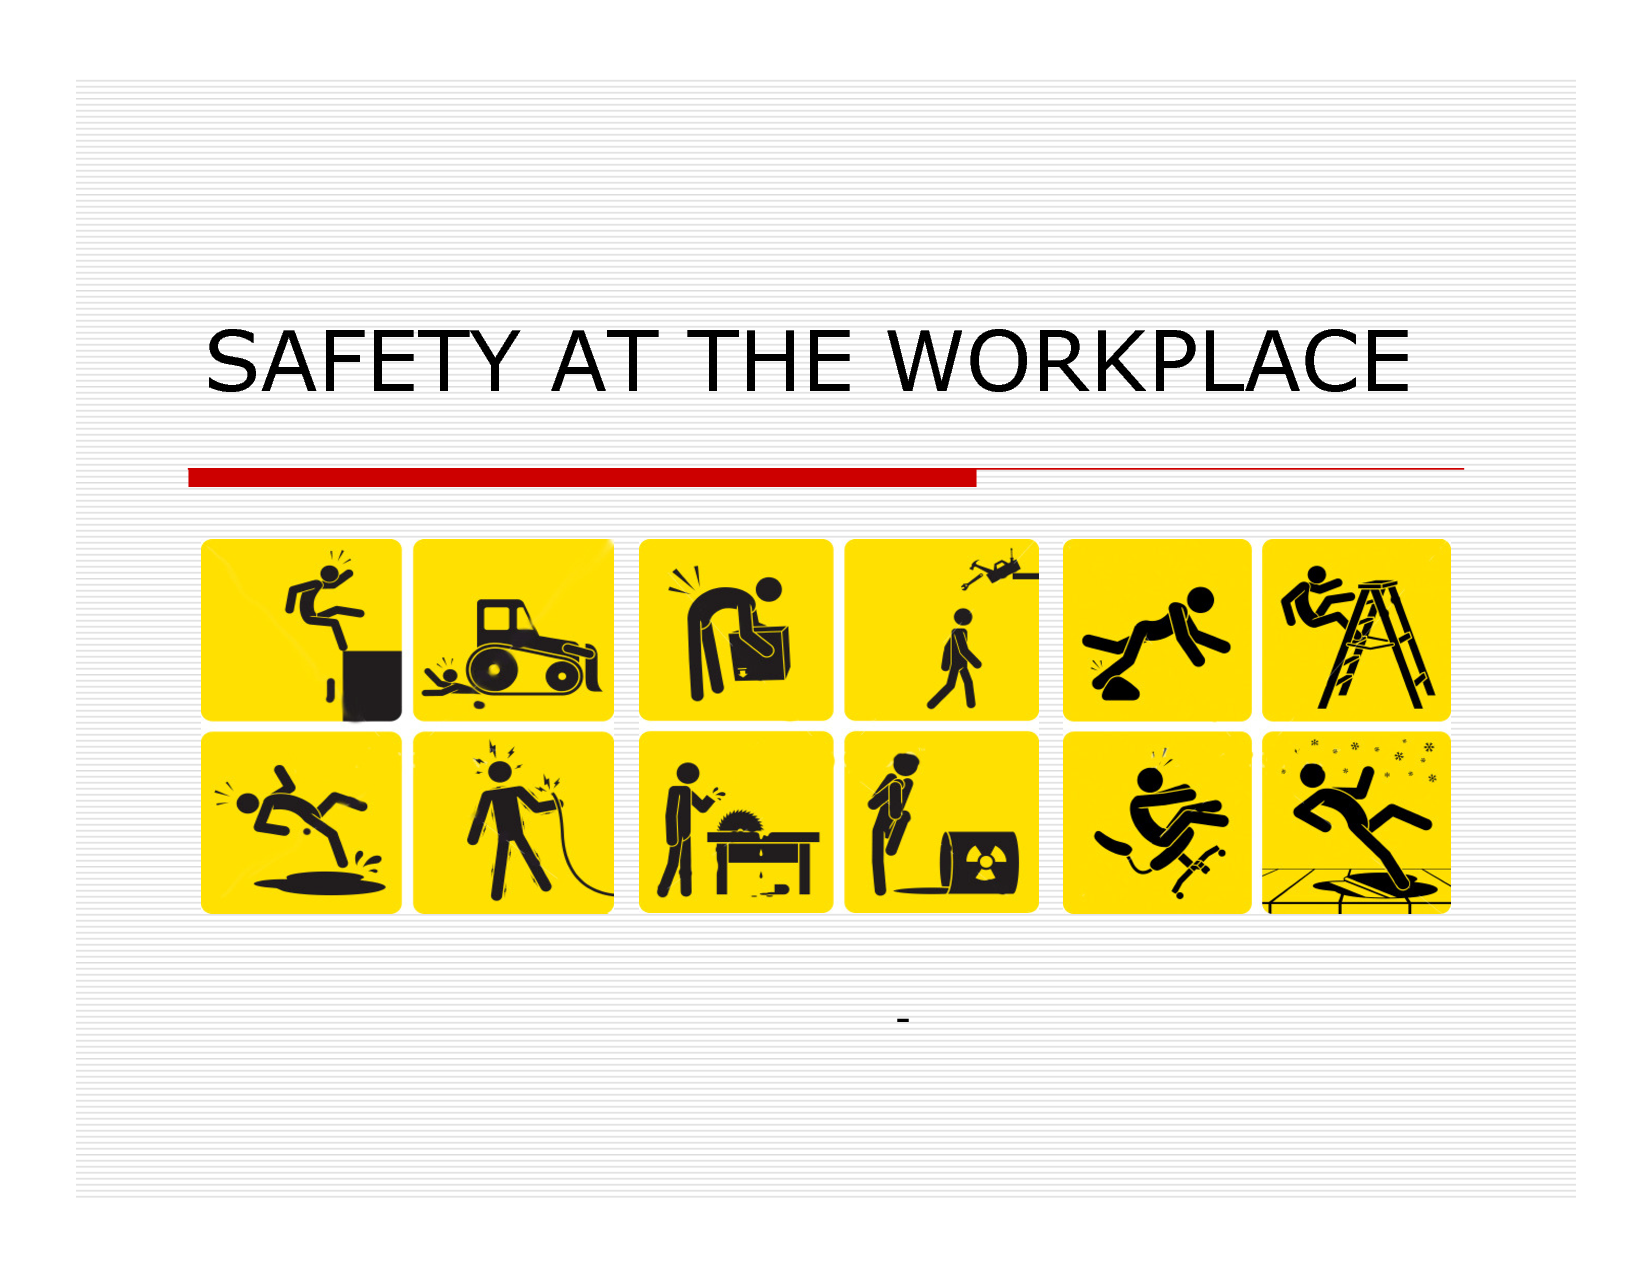 safety in the workplace In this manner workplace safety can be increased 13 emotional stories work better 16 inspection of the workplace environment: the primary step for the ways to increase work safety is by inspecting all the equipment and tools in the workplace to make sure they are easily preserved and safe to apply.